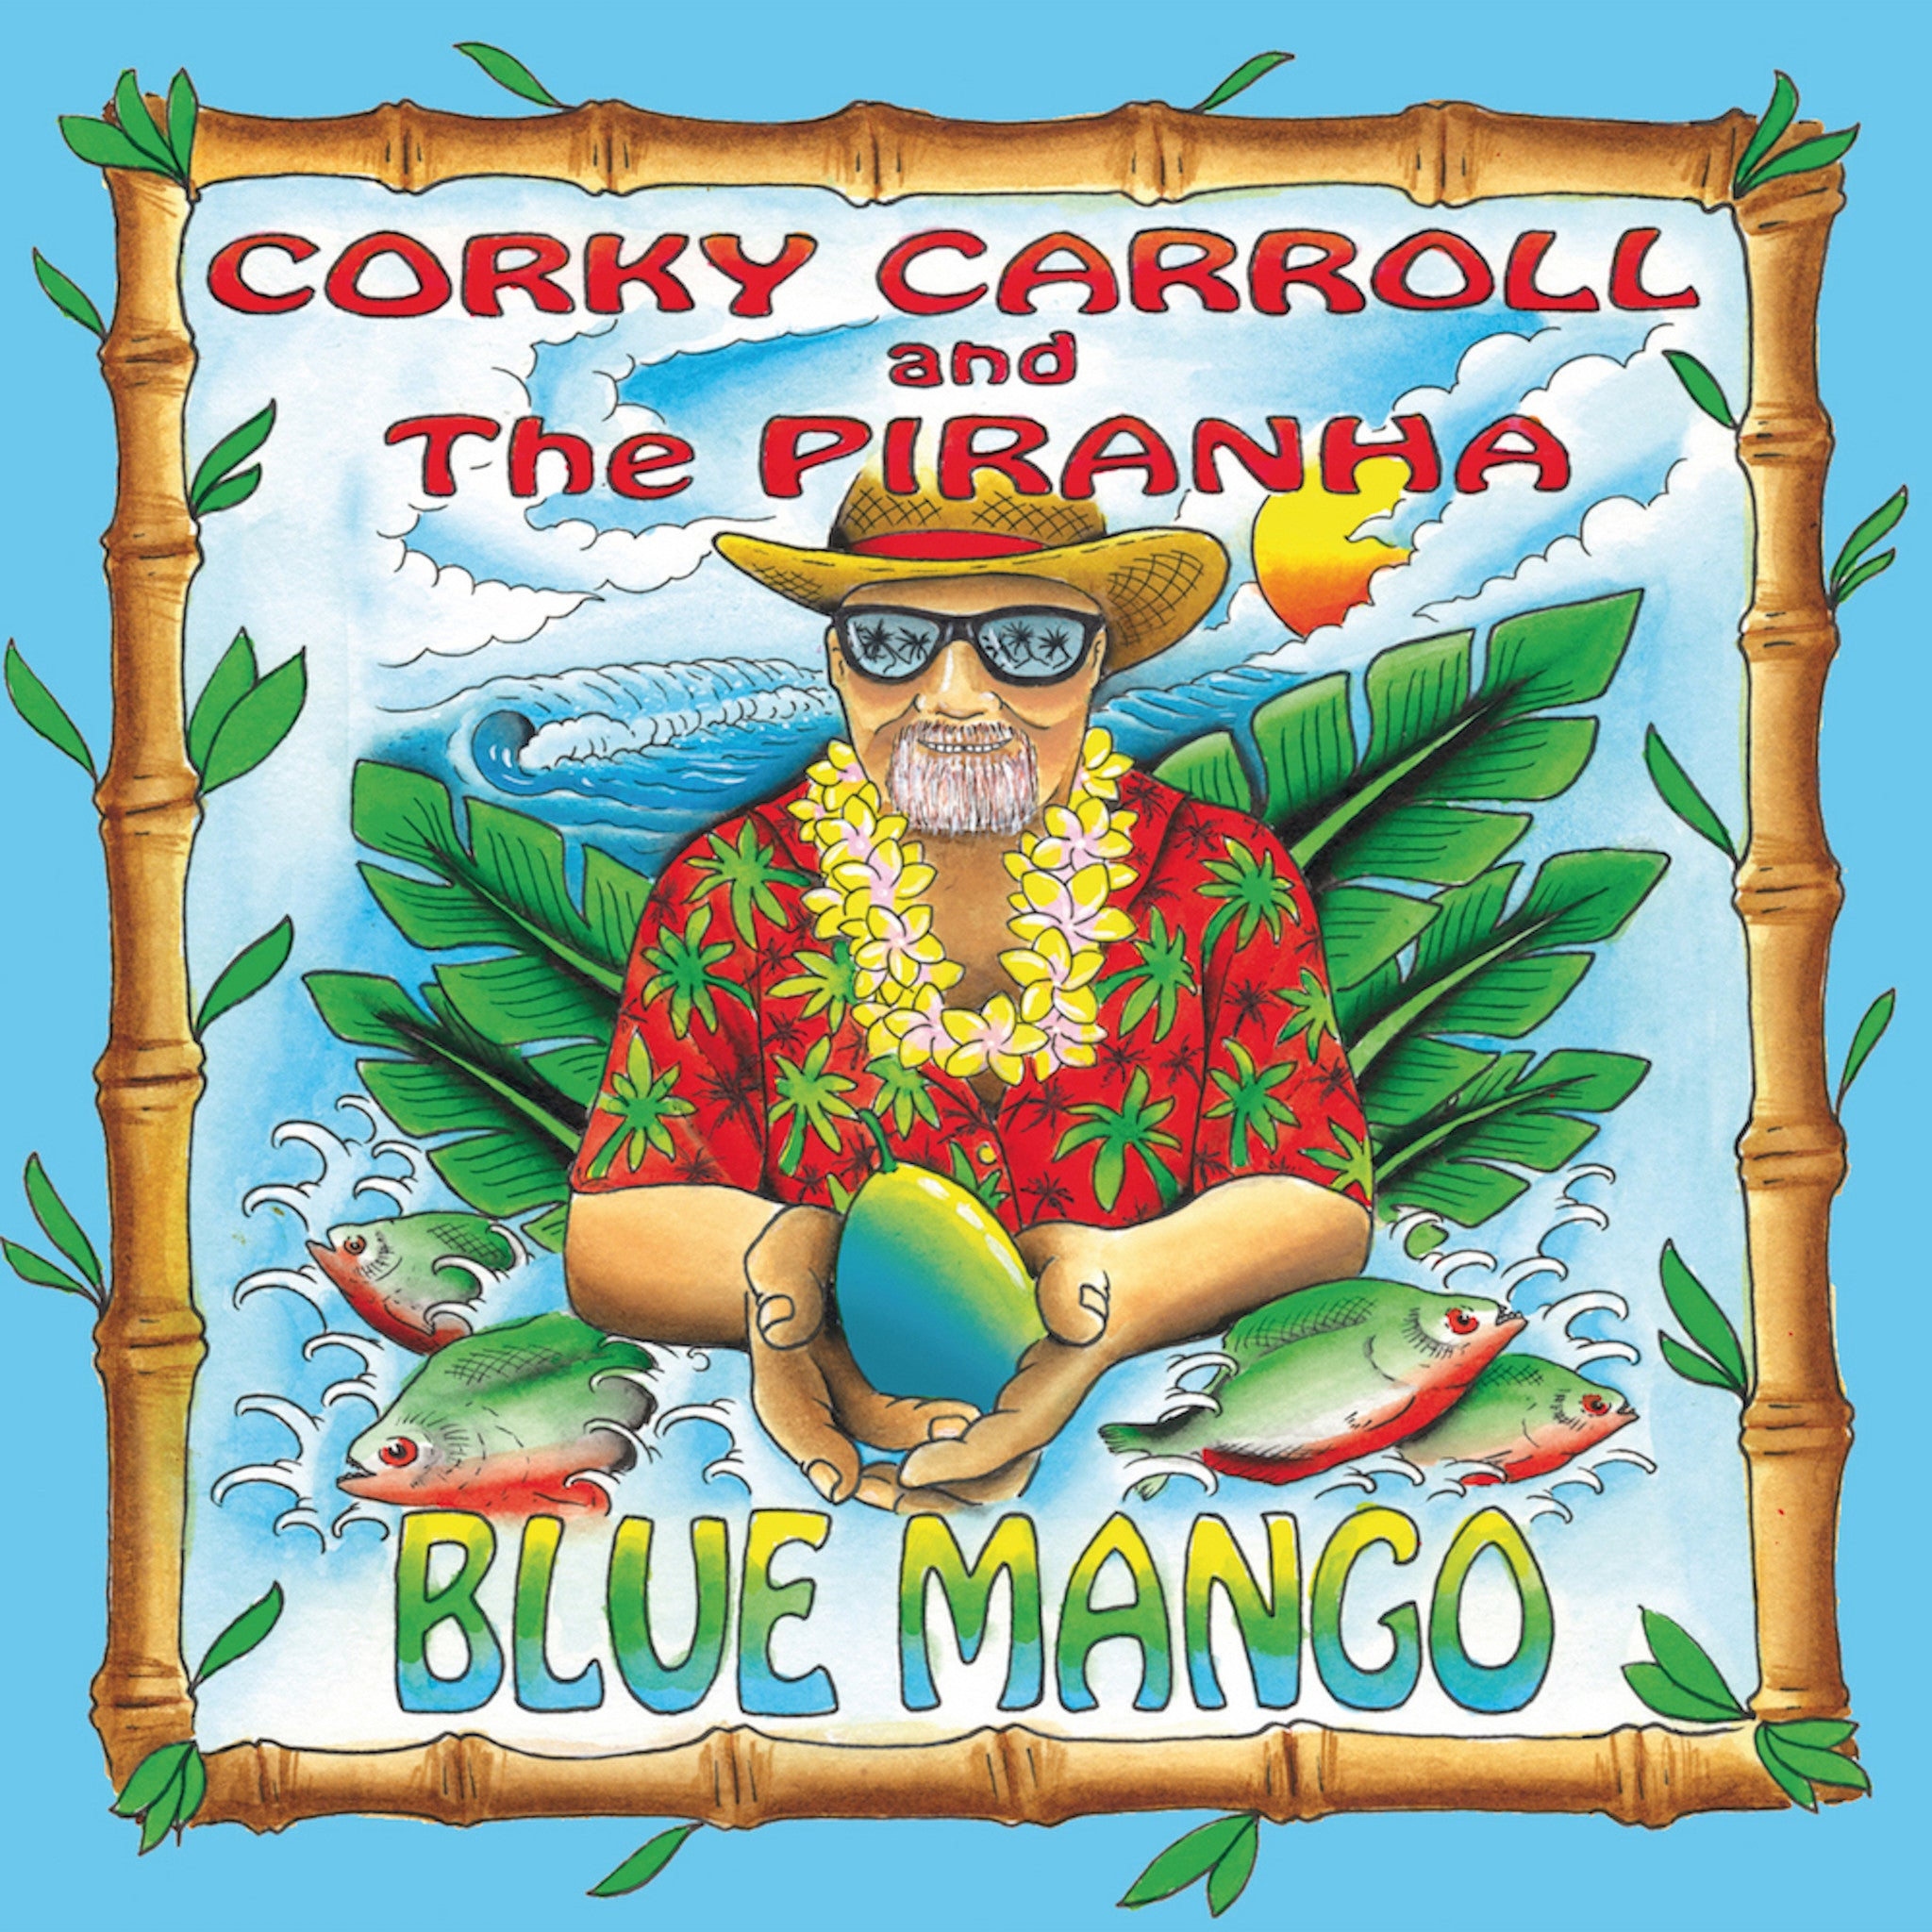 Corky Carroll and the Piranha - Blue Mango